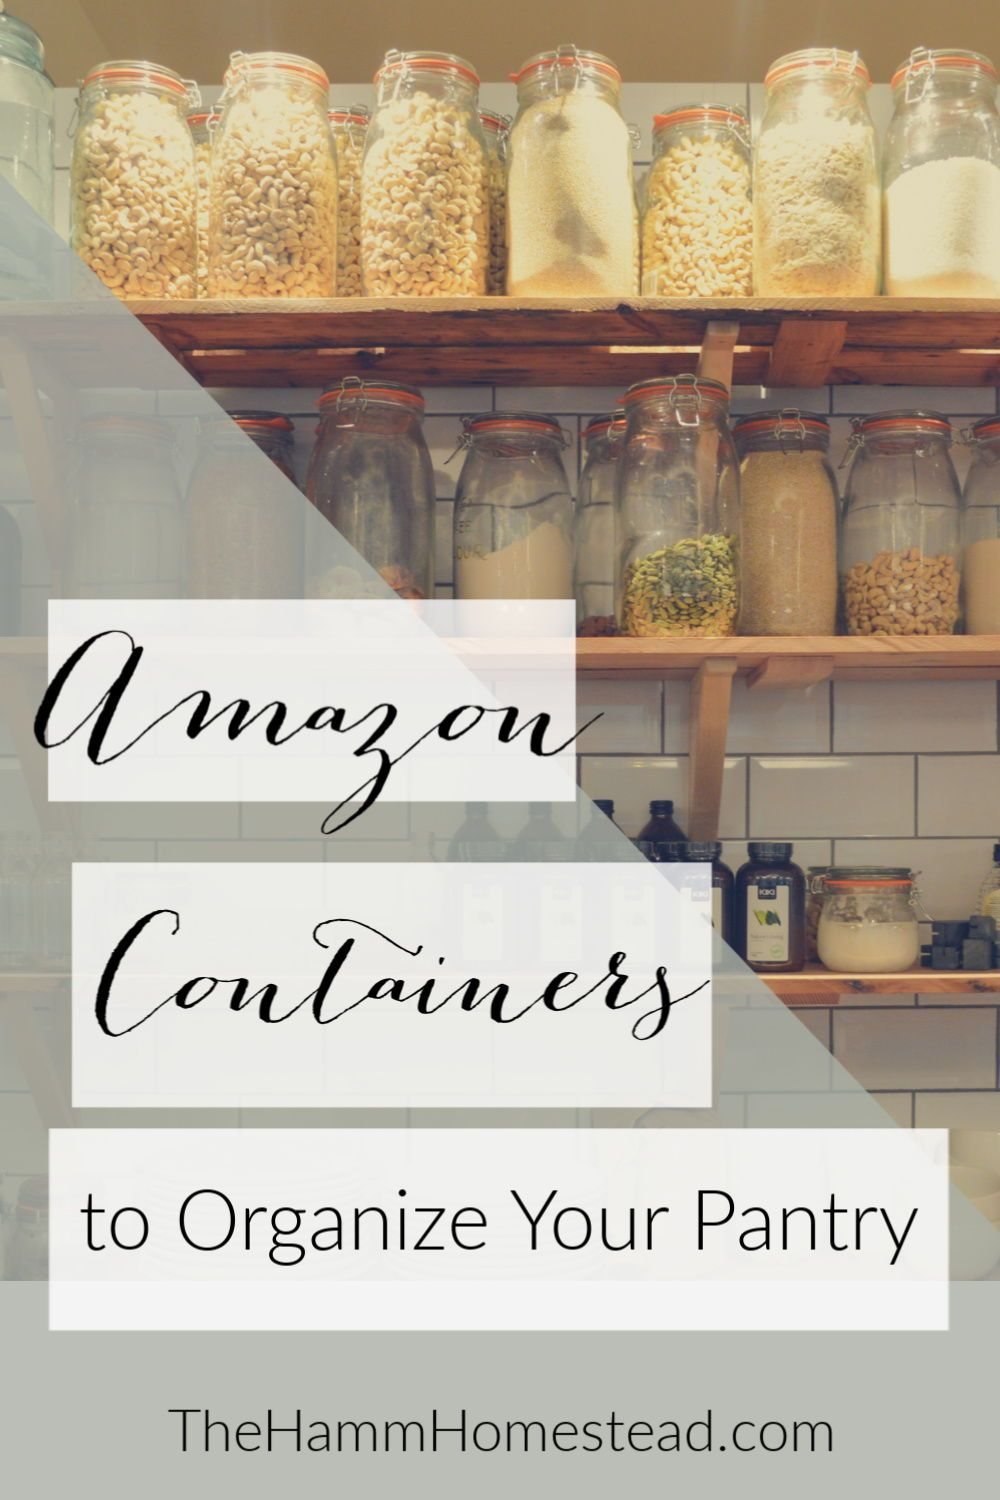 5 Amazon Pantry Containers To Organize Your Pantry The Hamm Homestead Pantry Containers Pantry Storage Containers Kitchen Pantry Storage